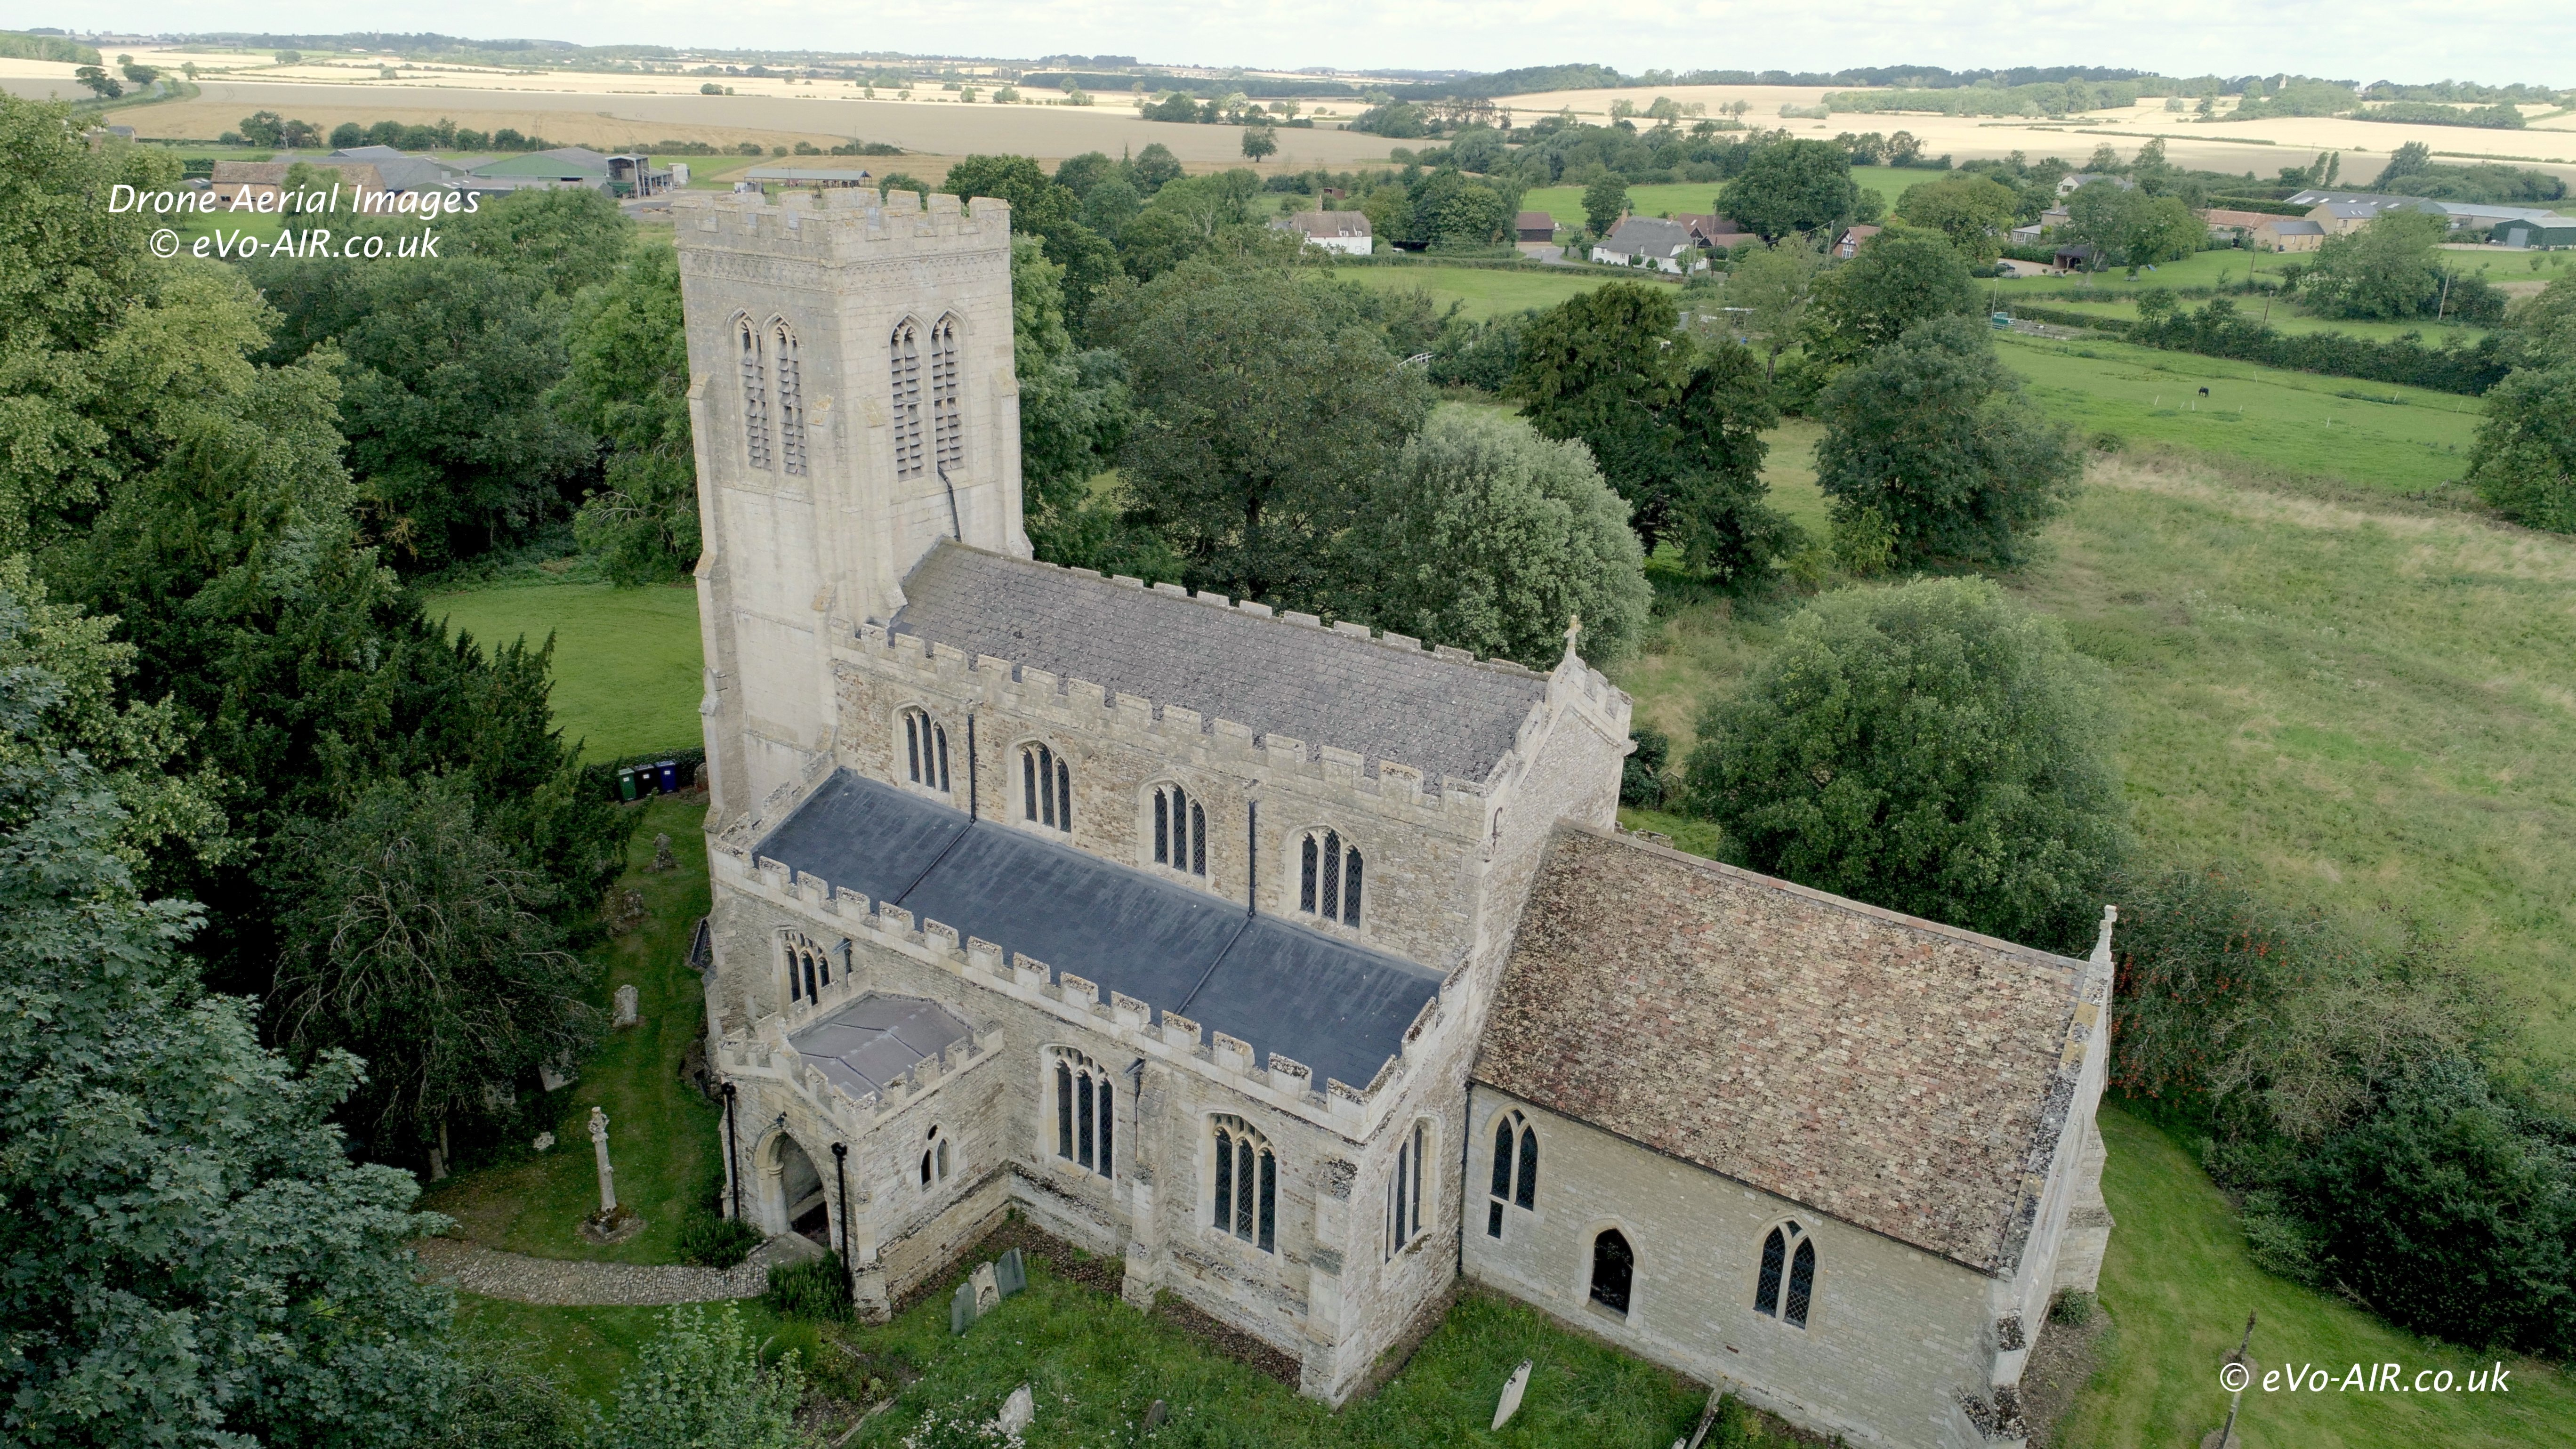 Drone aerial photograph of a church for a quinquennial inspection